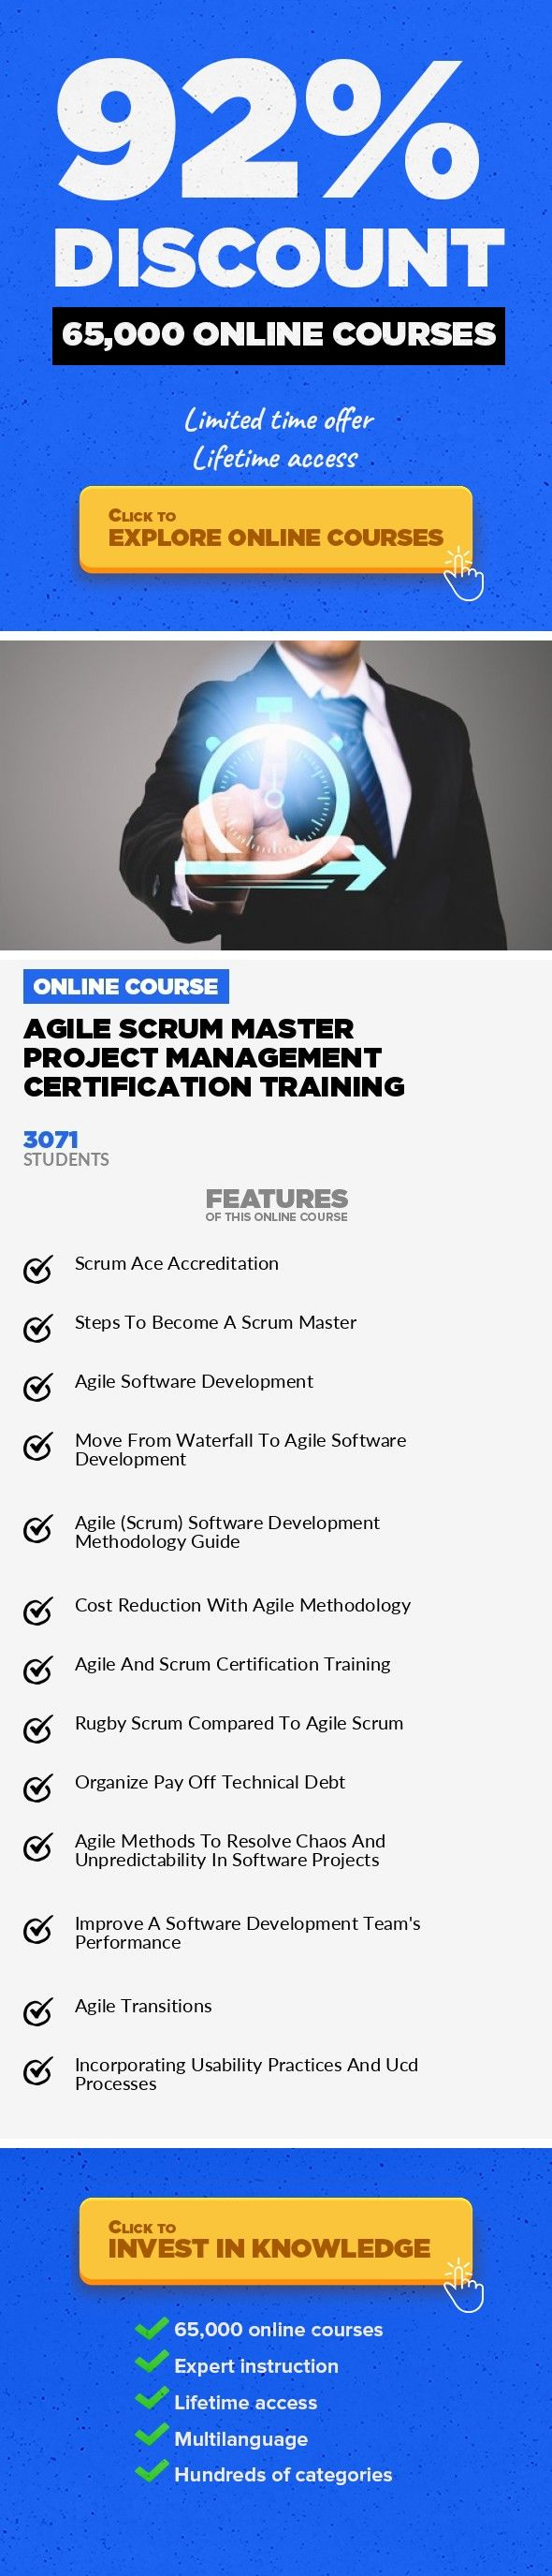 Agile Scrum Master Project Management Certification Training Project